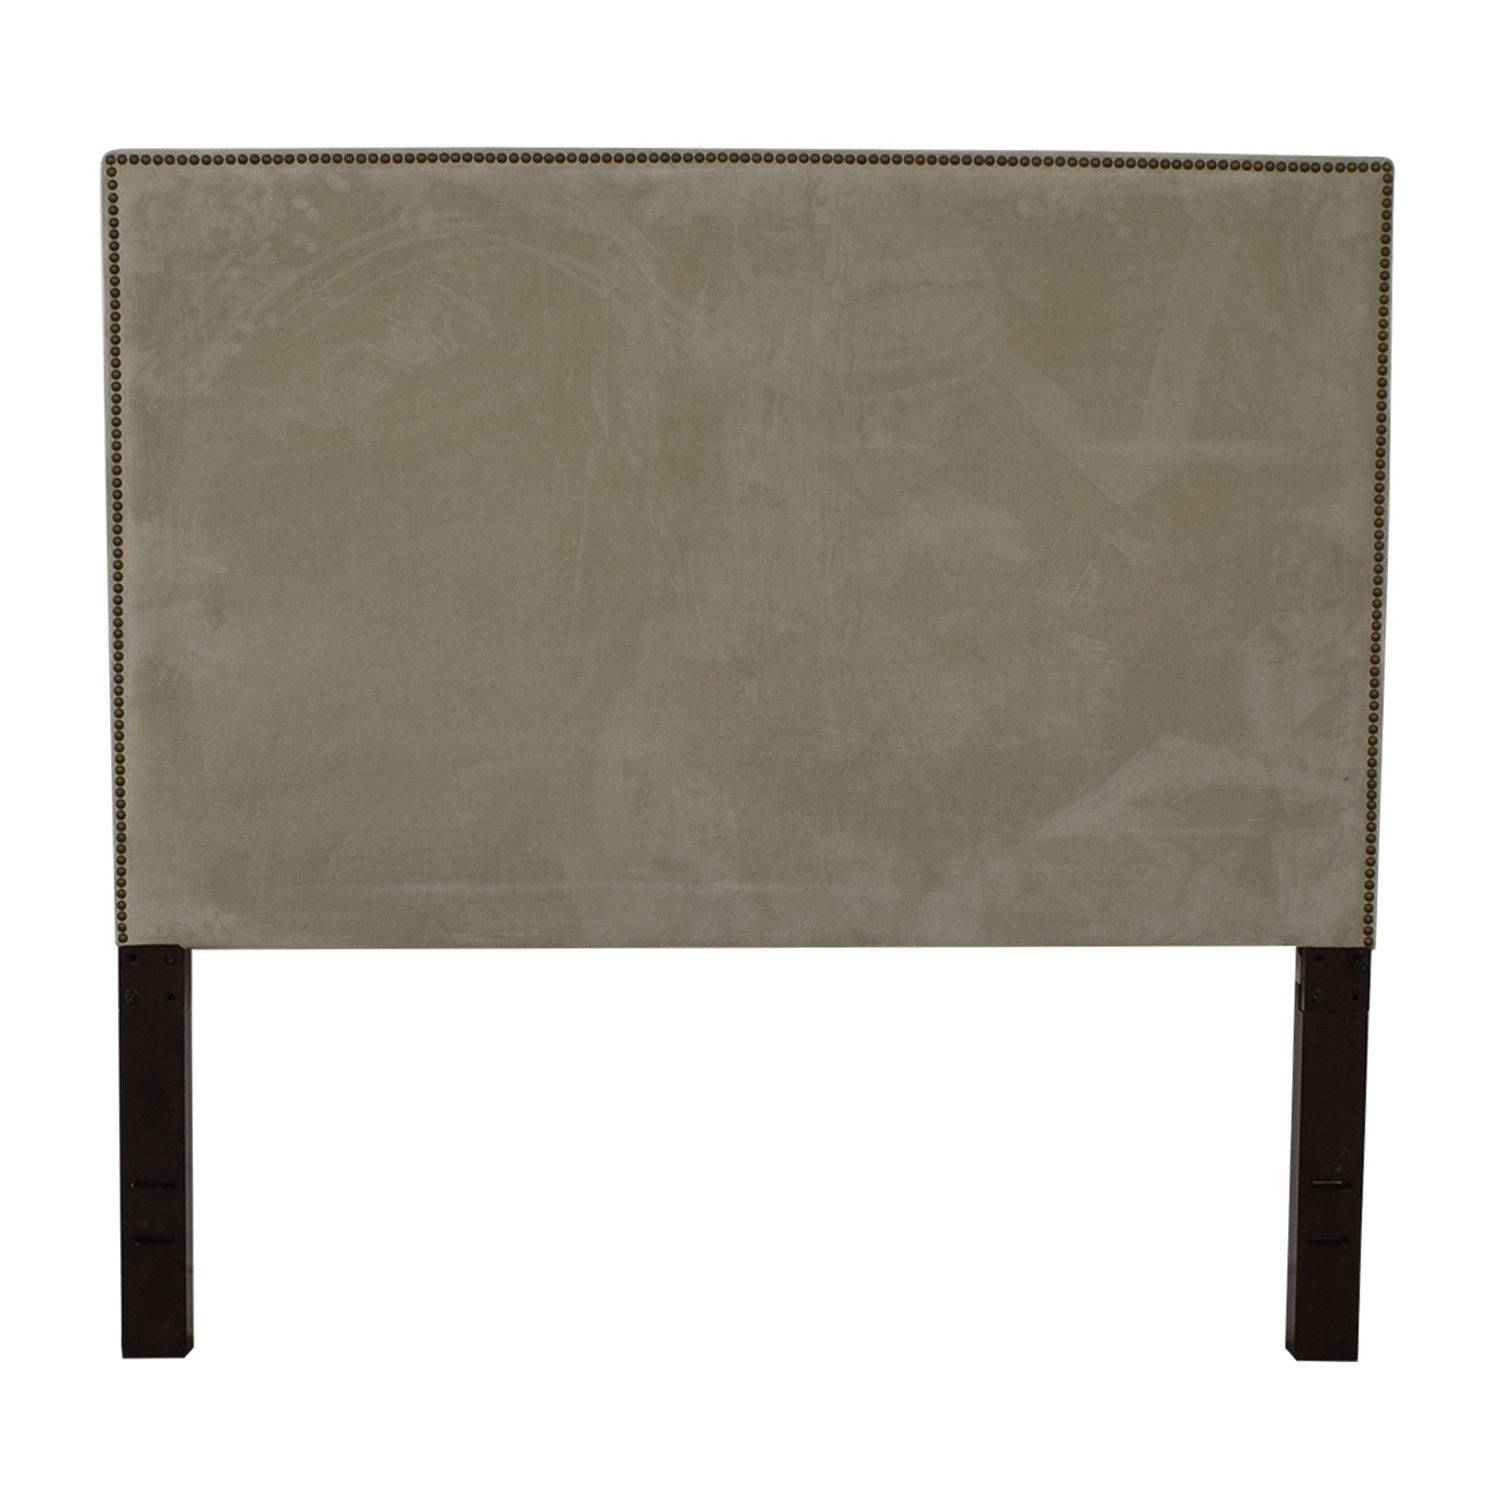 West Elm West Elm Tall Nailhead Upholstered Headboard dimensions